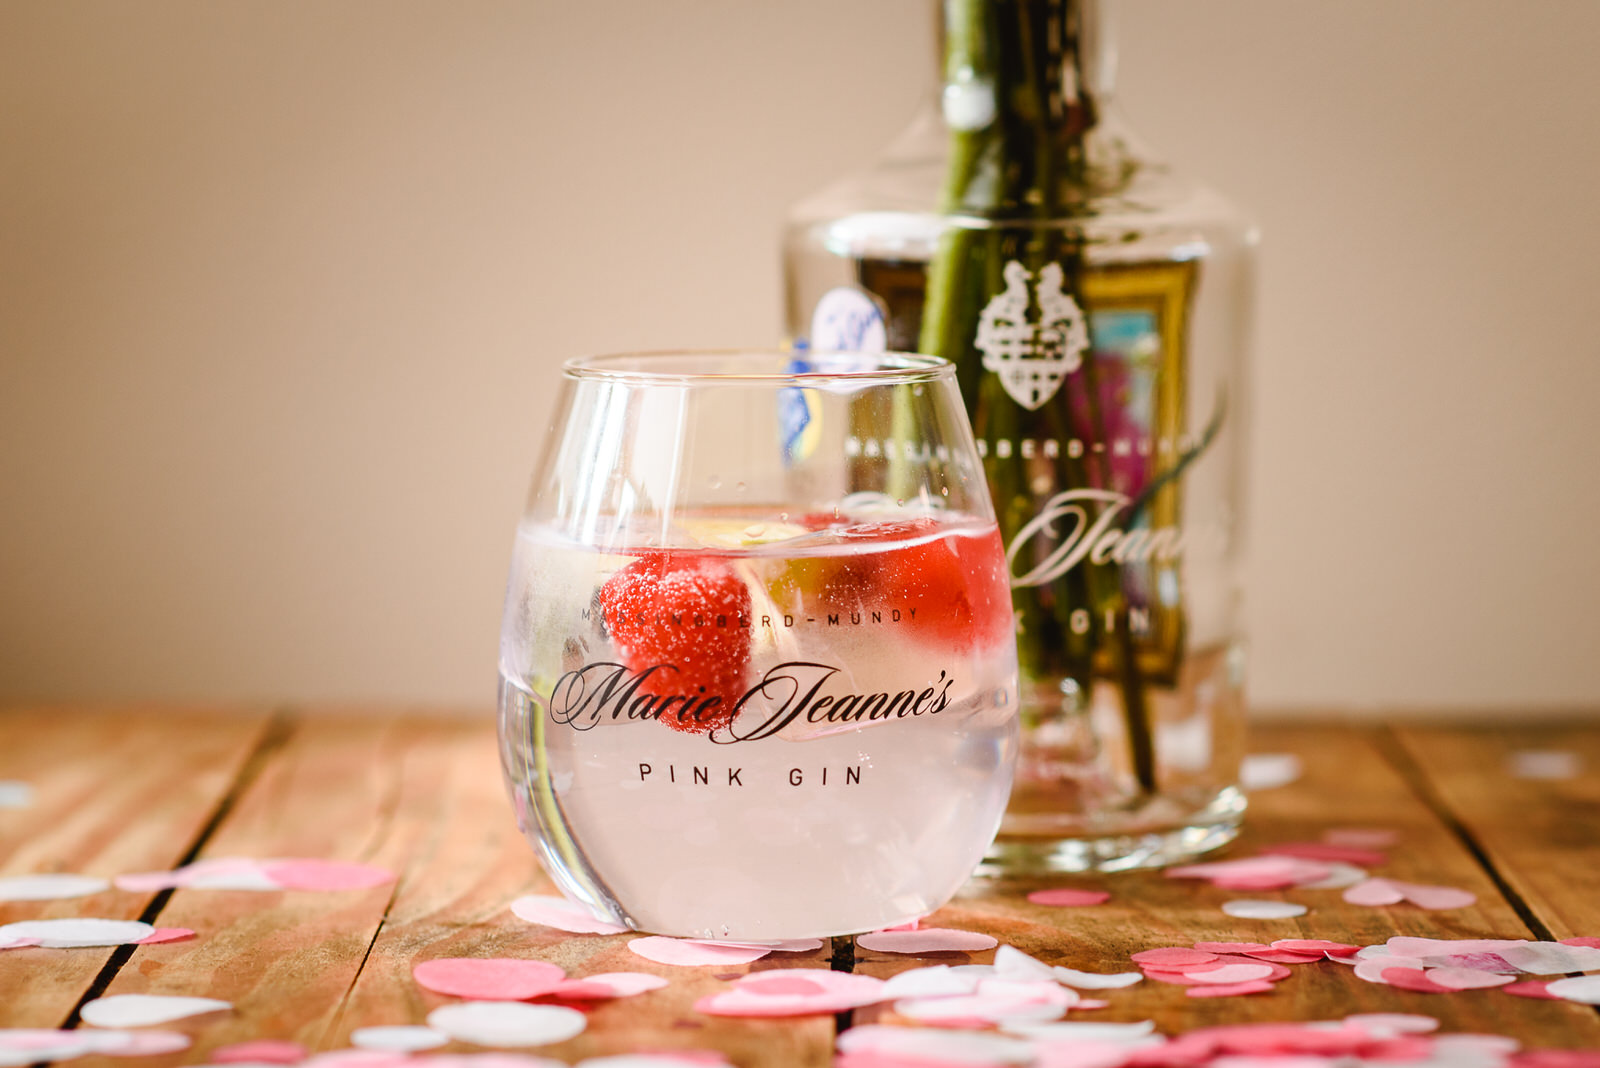 Pink gin works well with lemonade